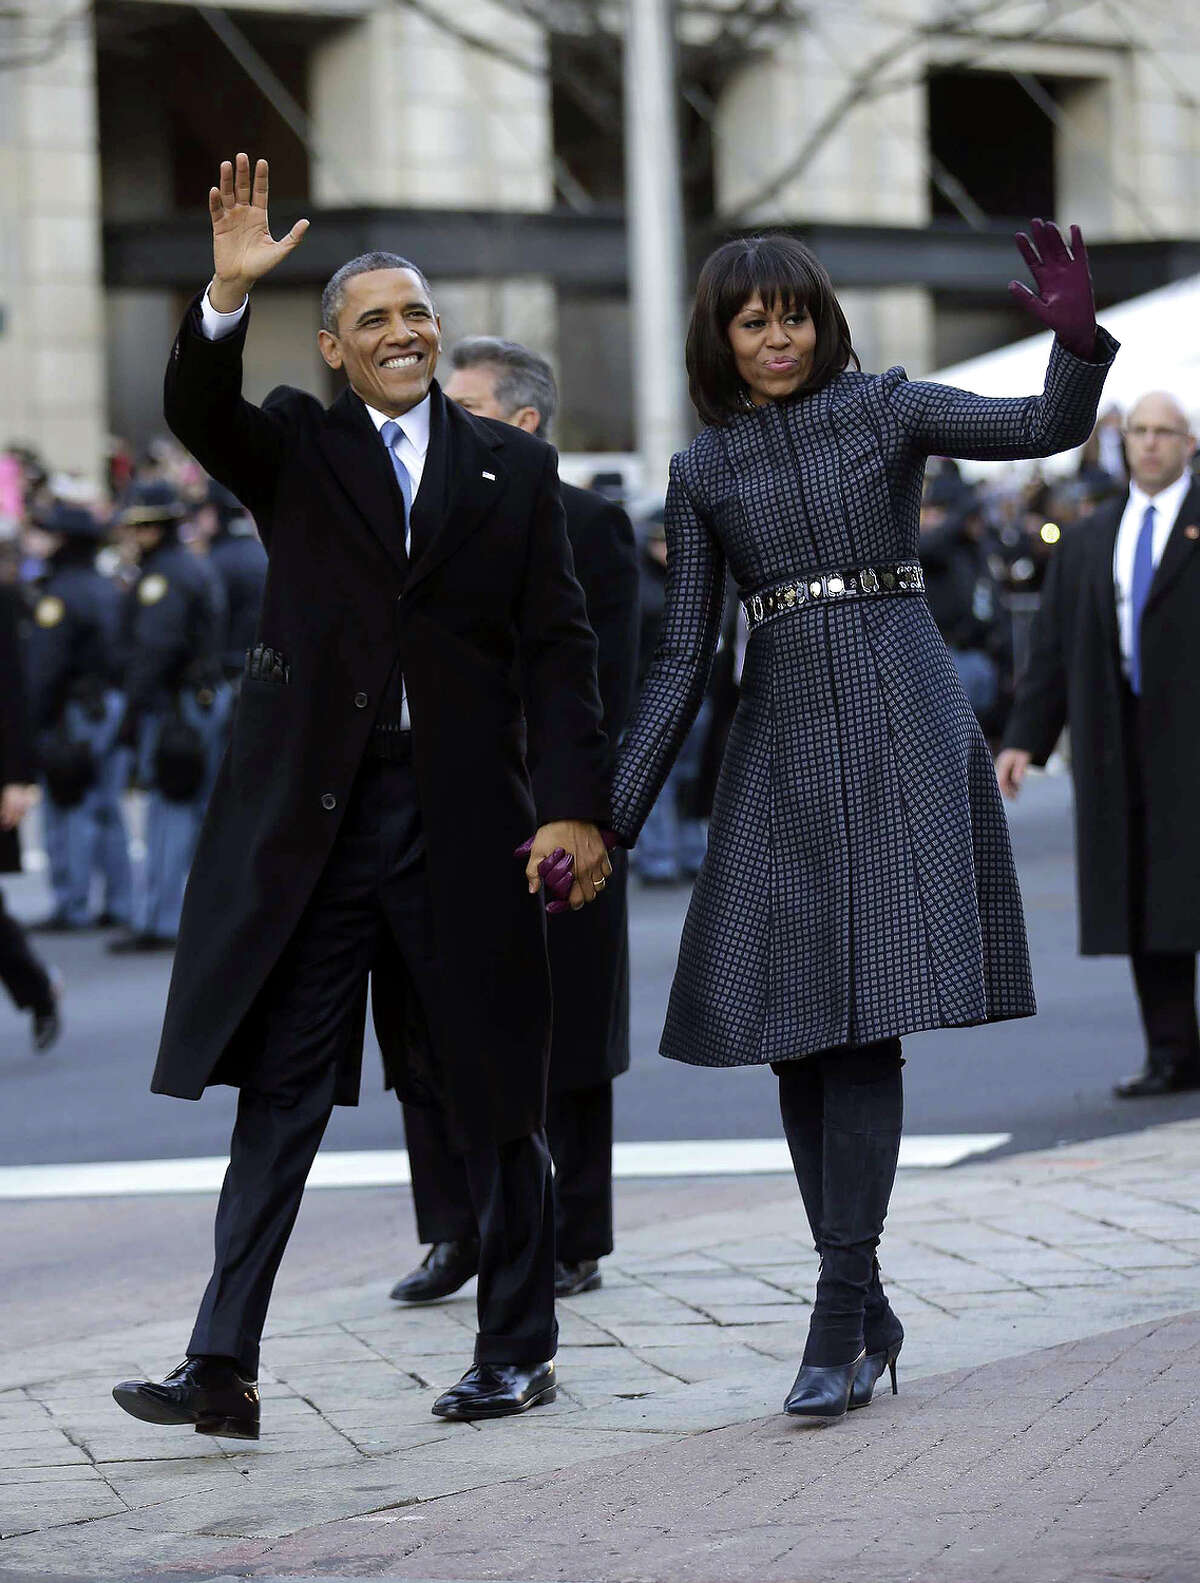 President Barack Obama and first lady Michelle Obama waves as they walk down Pennsylvania Avenue during the 57th Presidential Inauguration parade Monday, Jan. 21, 2013, in Washington. (AP Photo/Charles Dharapak)